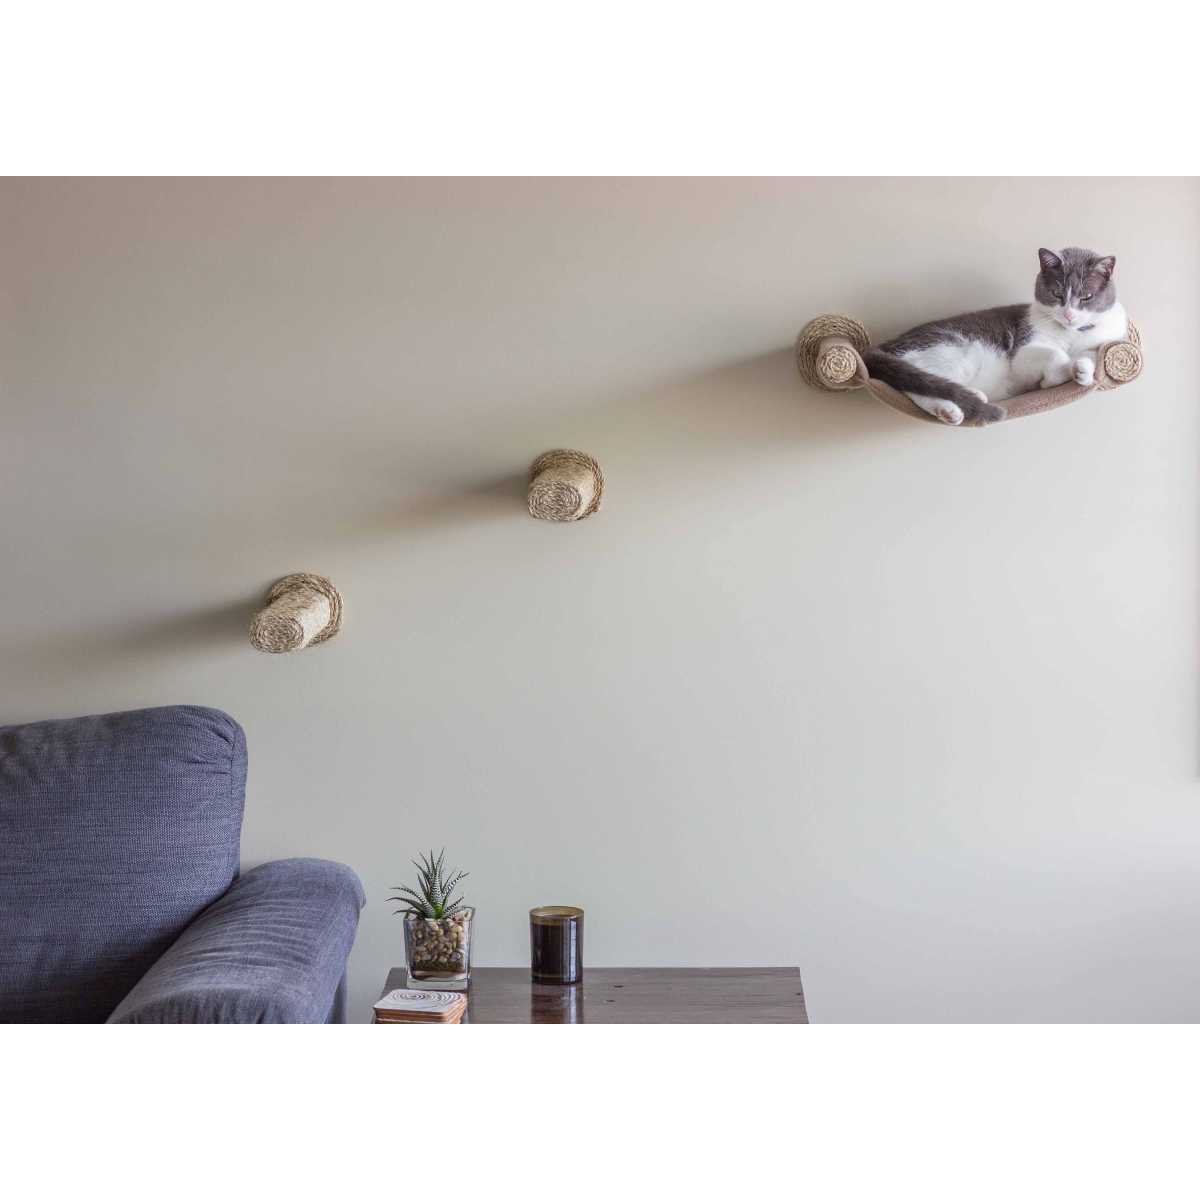 Cat Hammock Wall Mounted Cat Bed With 2 Sisal Steps